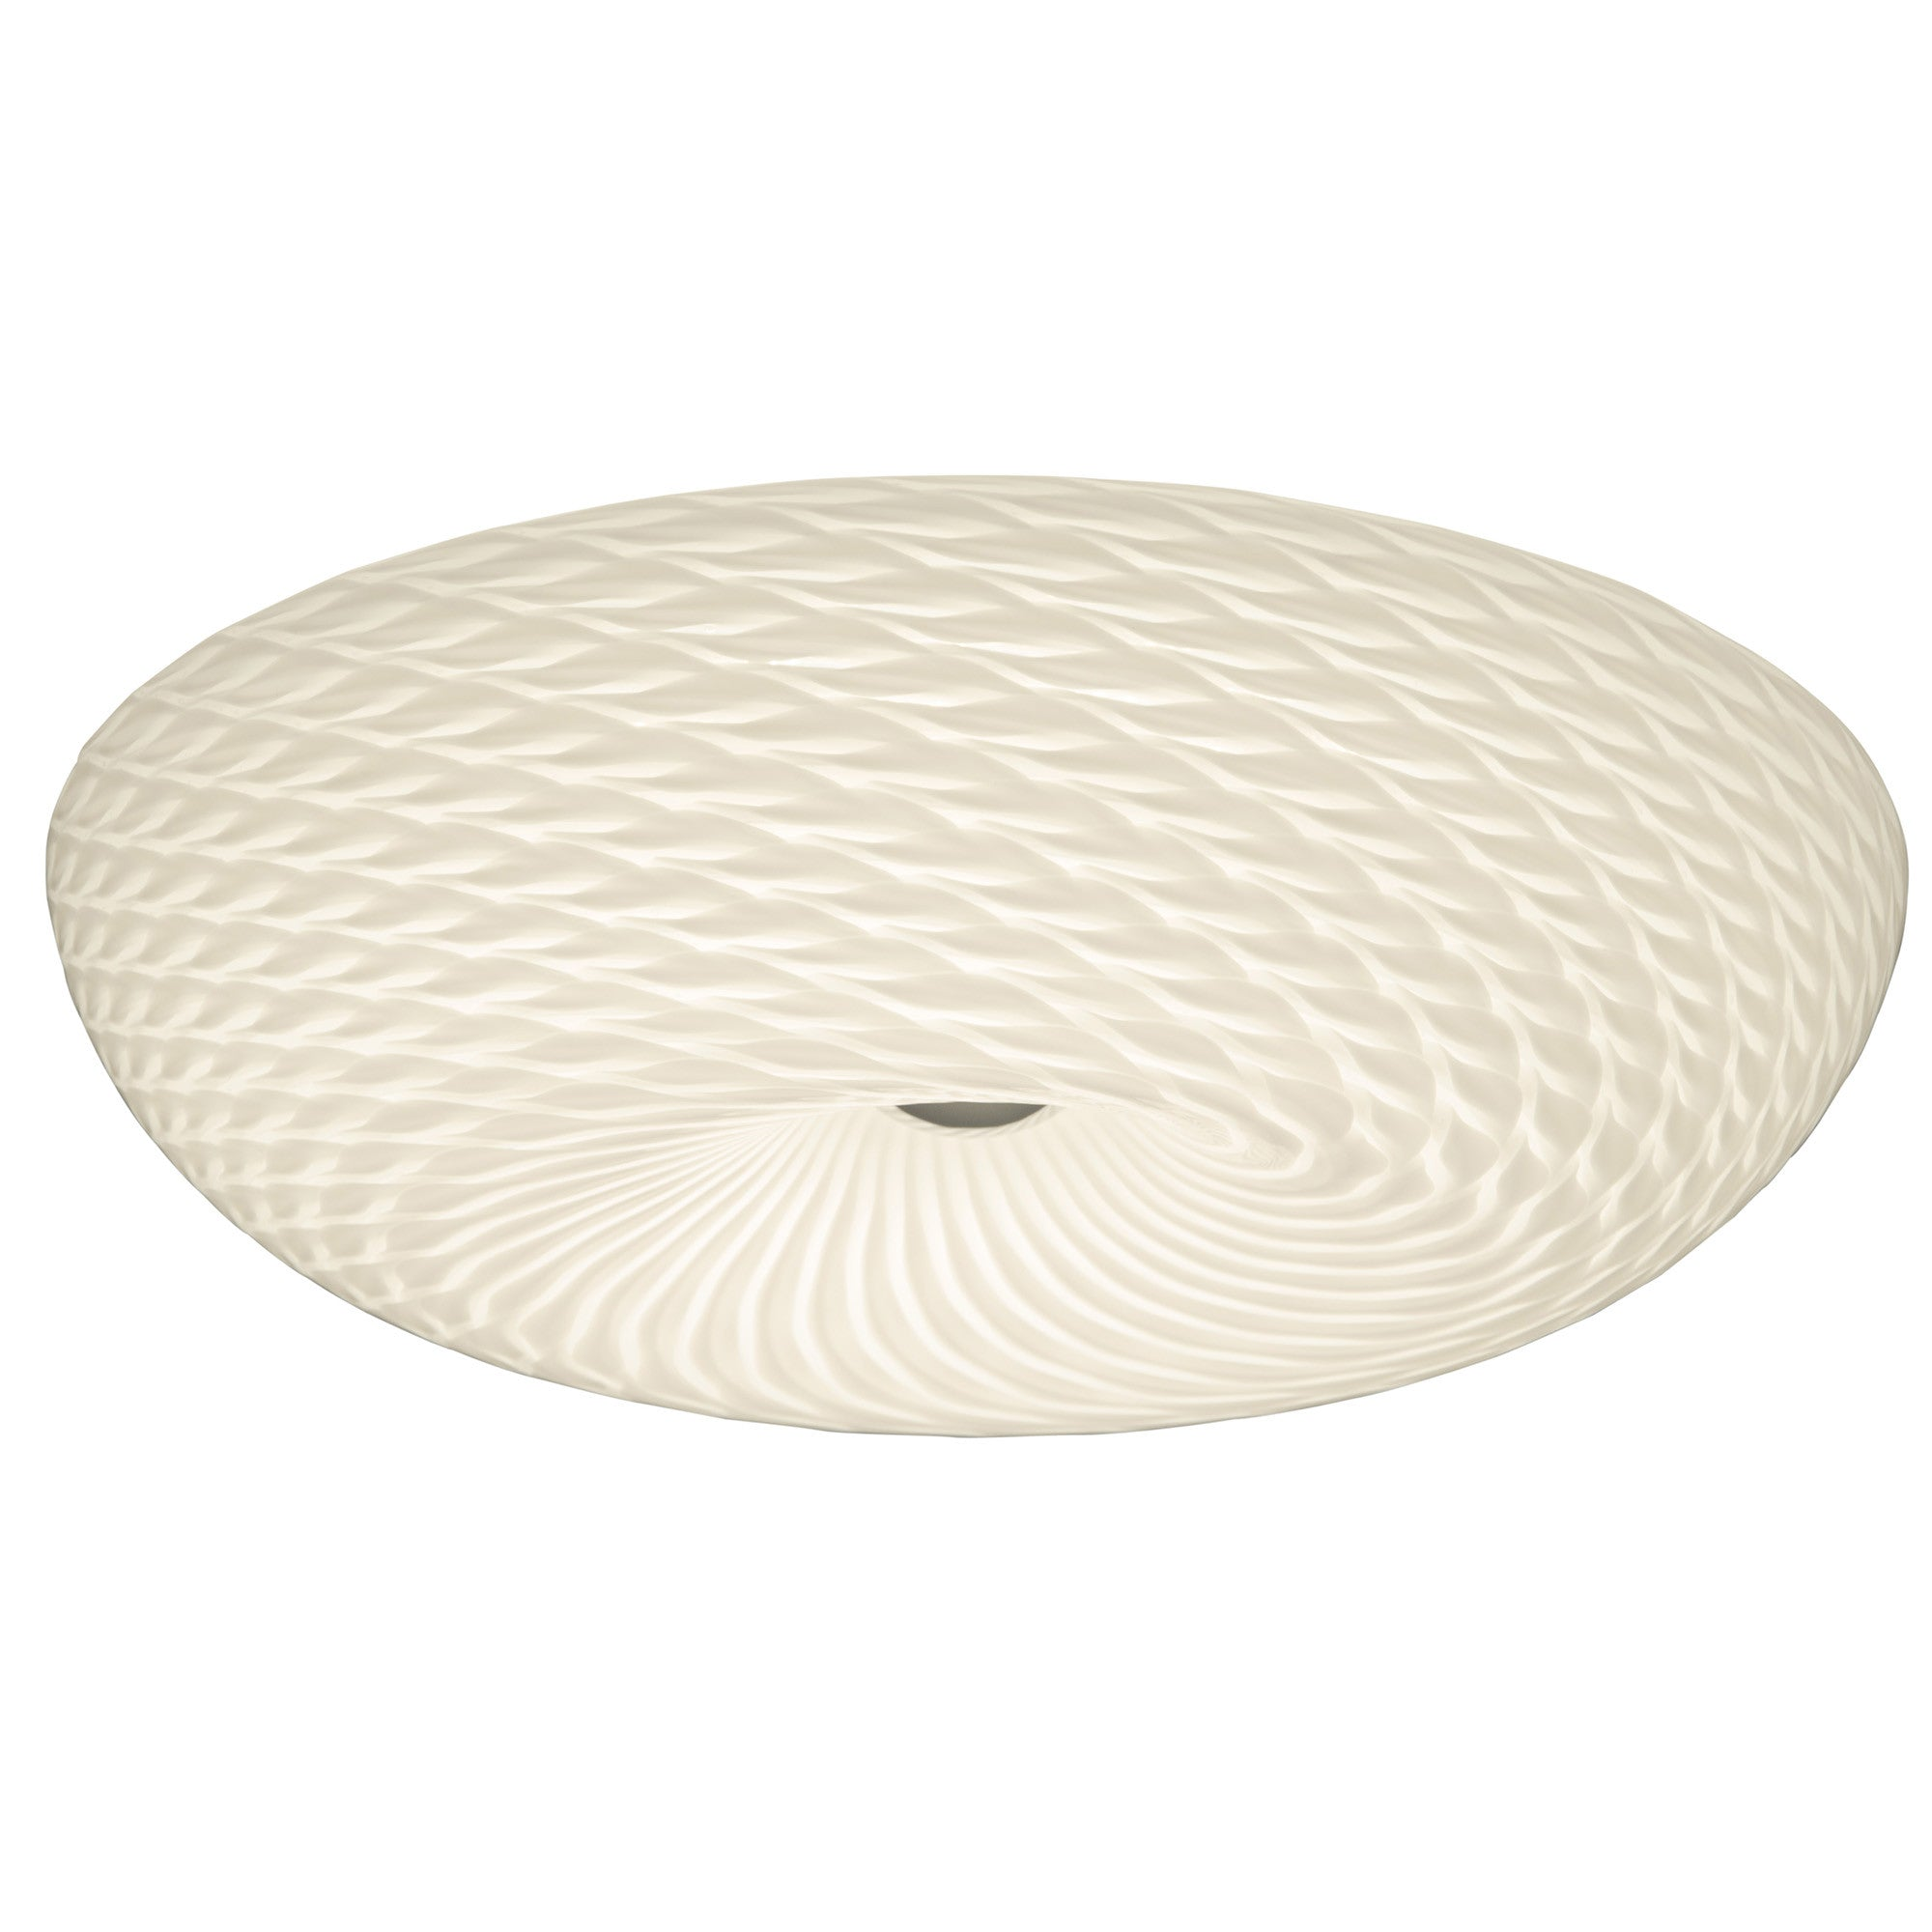 Swirled AC1585 Large Flush Ceiling Light